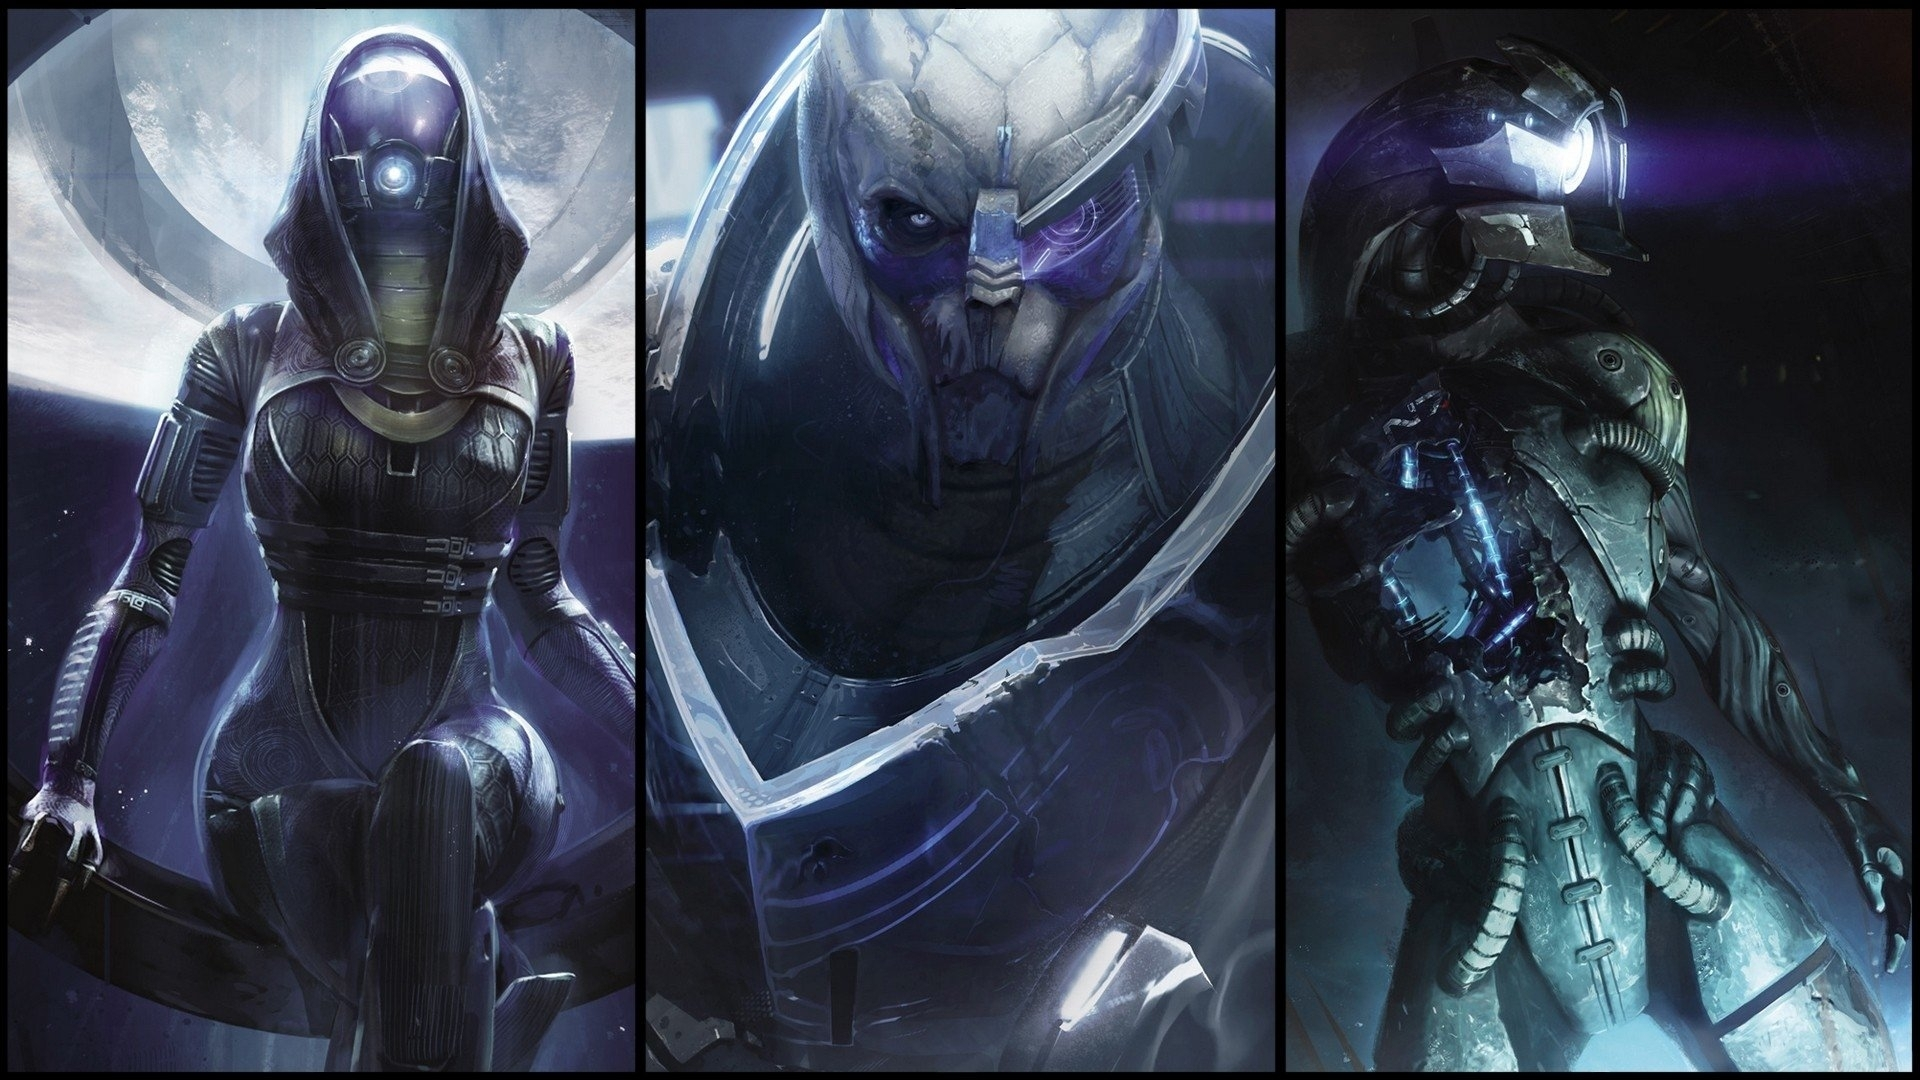 72 garrus vakarian hd wallpapers | background images - wallpaper abyss